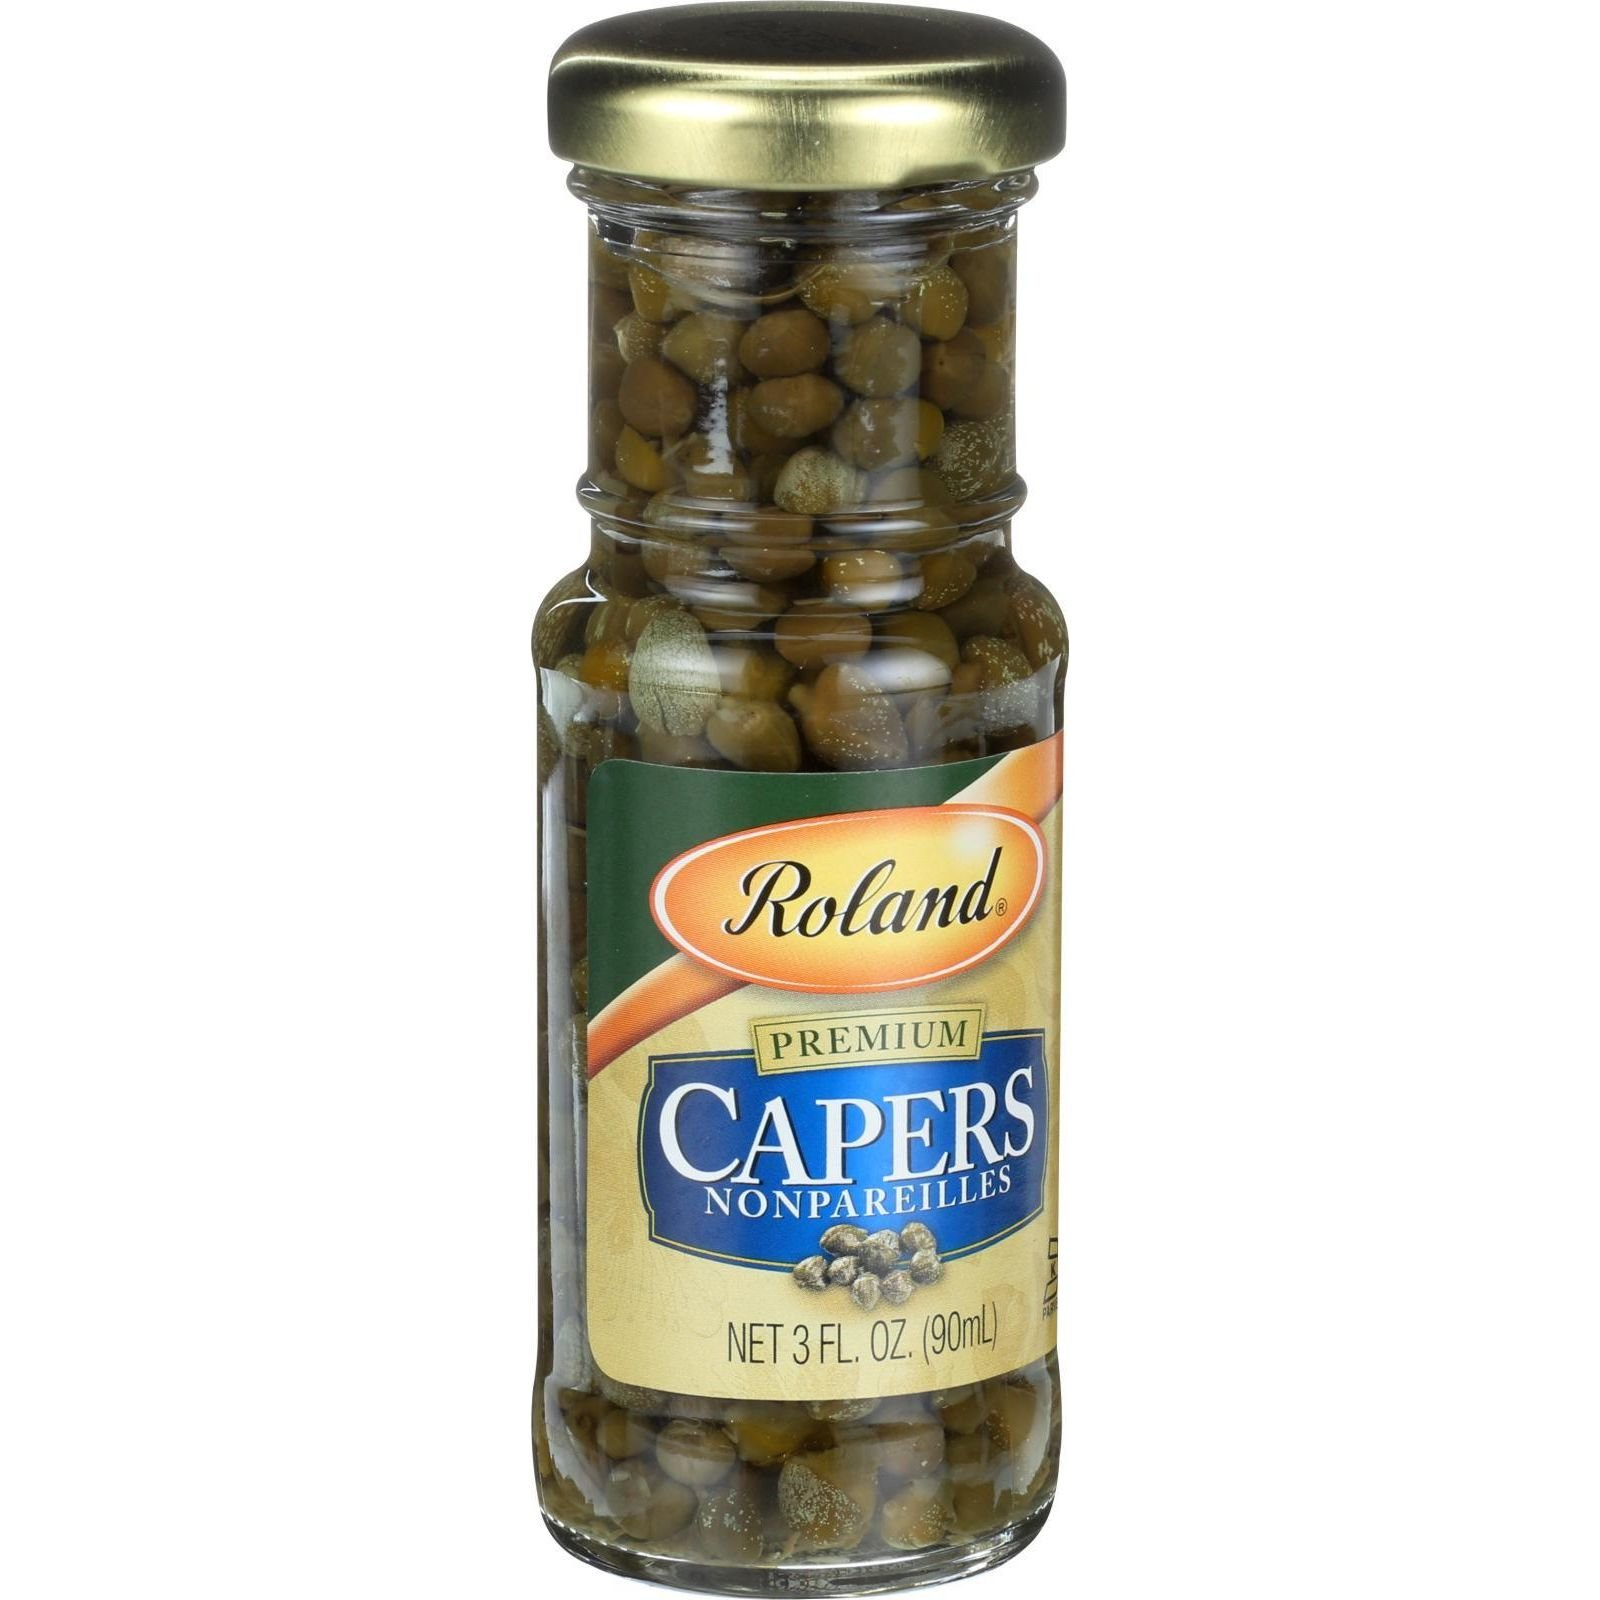 Roland Products Capers - Nonpareille - 3 oz - Case of 3